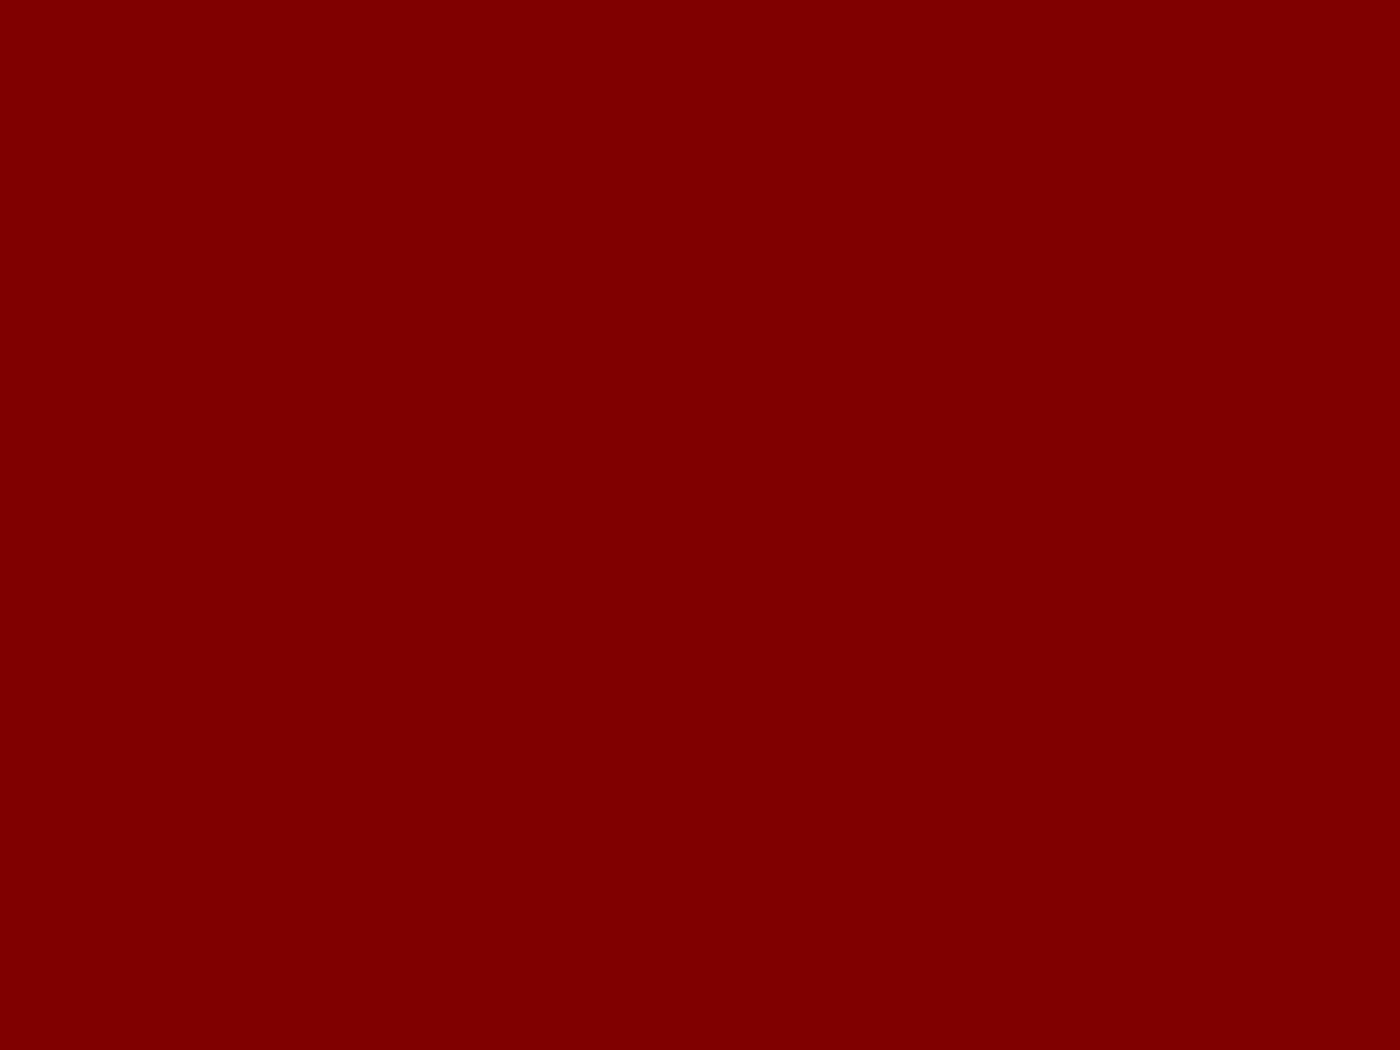 1400x1050 Maroon Web Solid Color Background